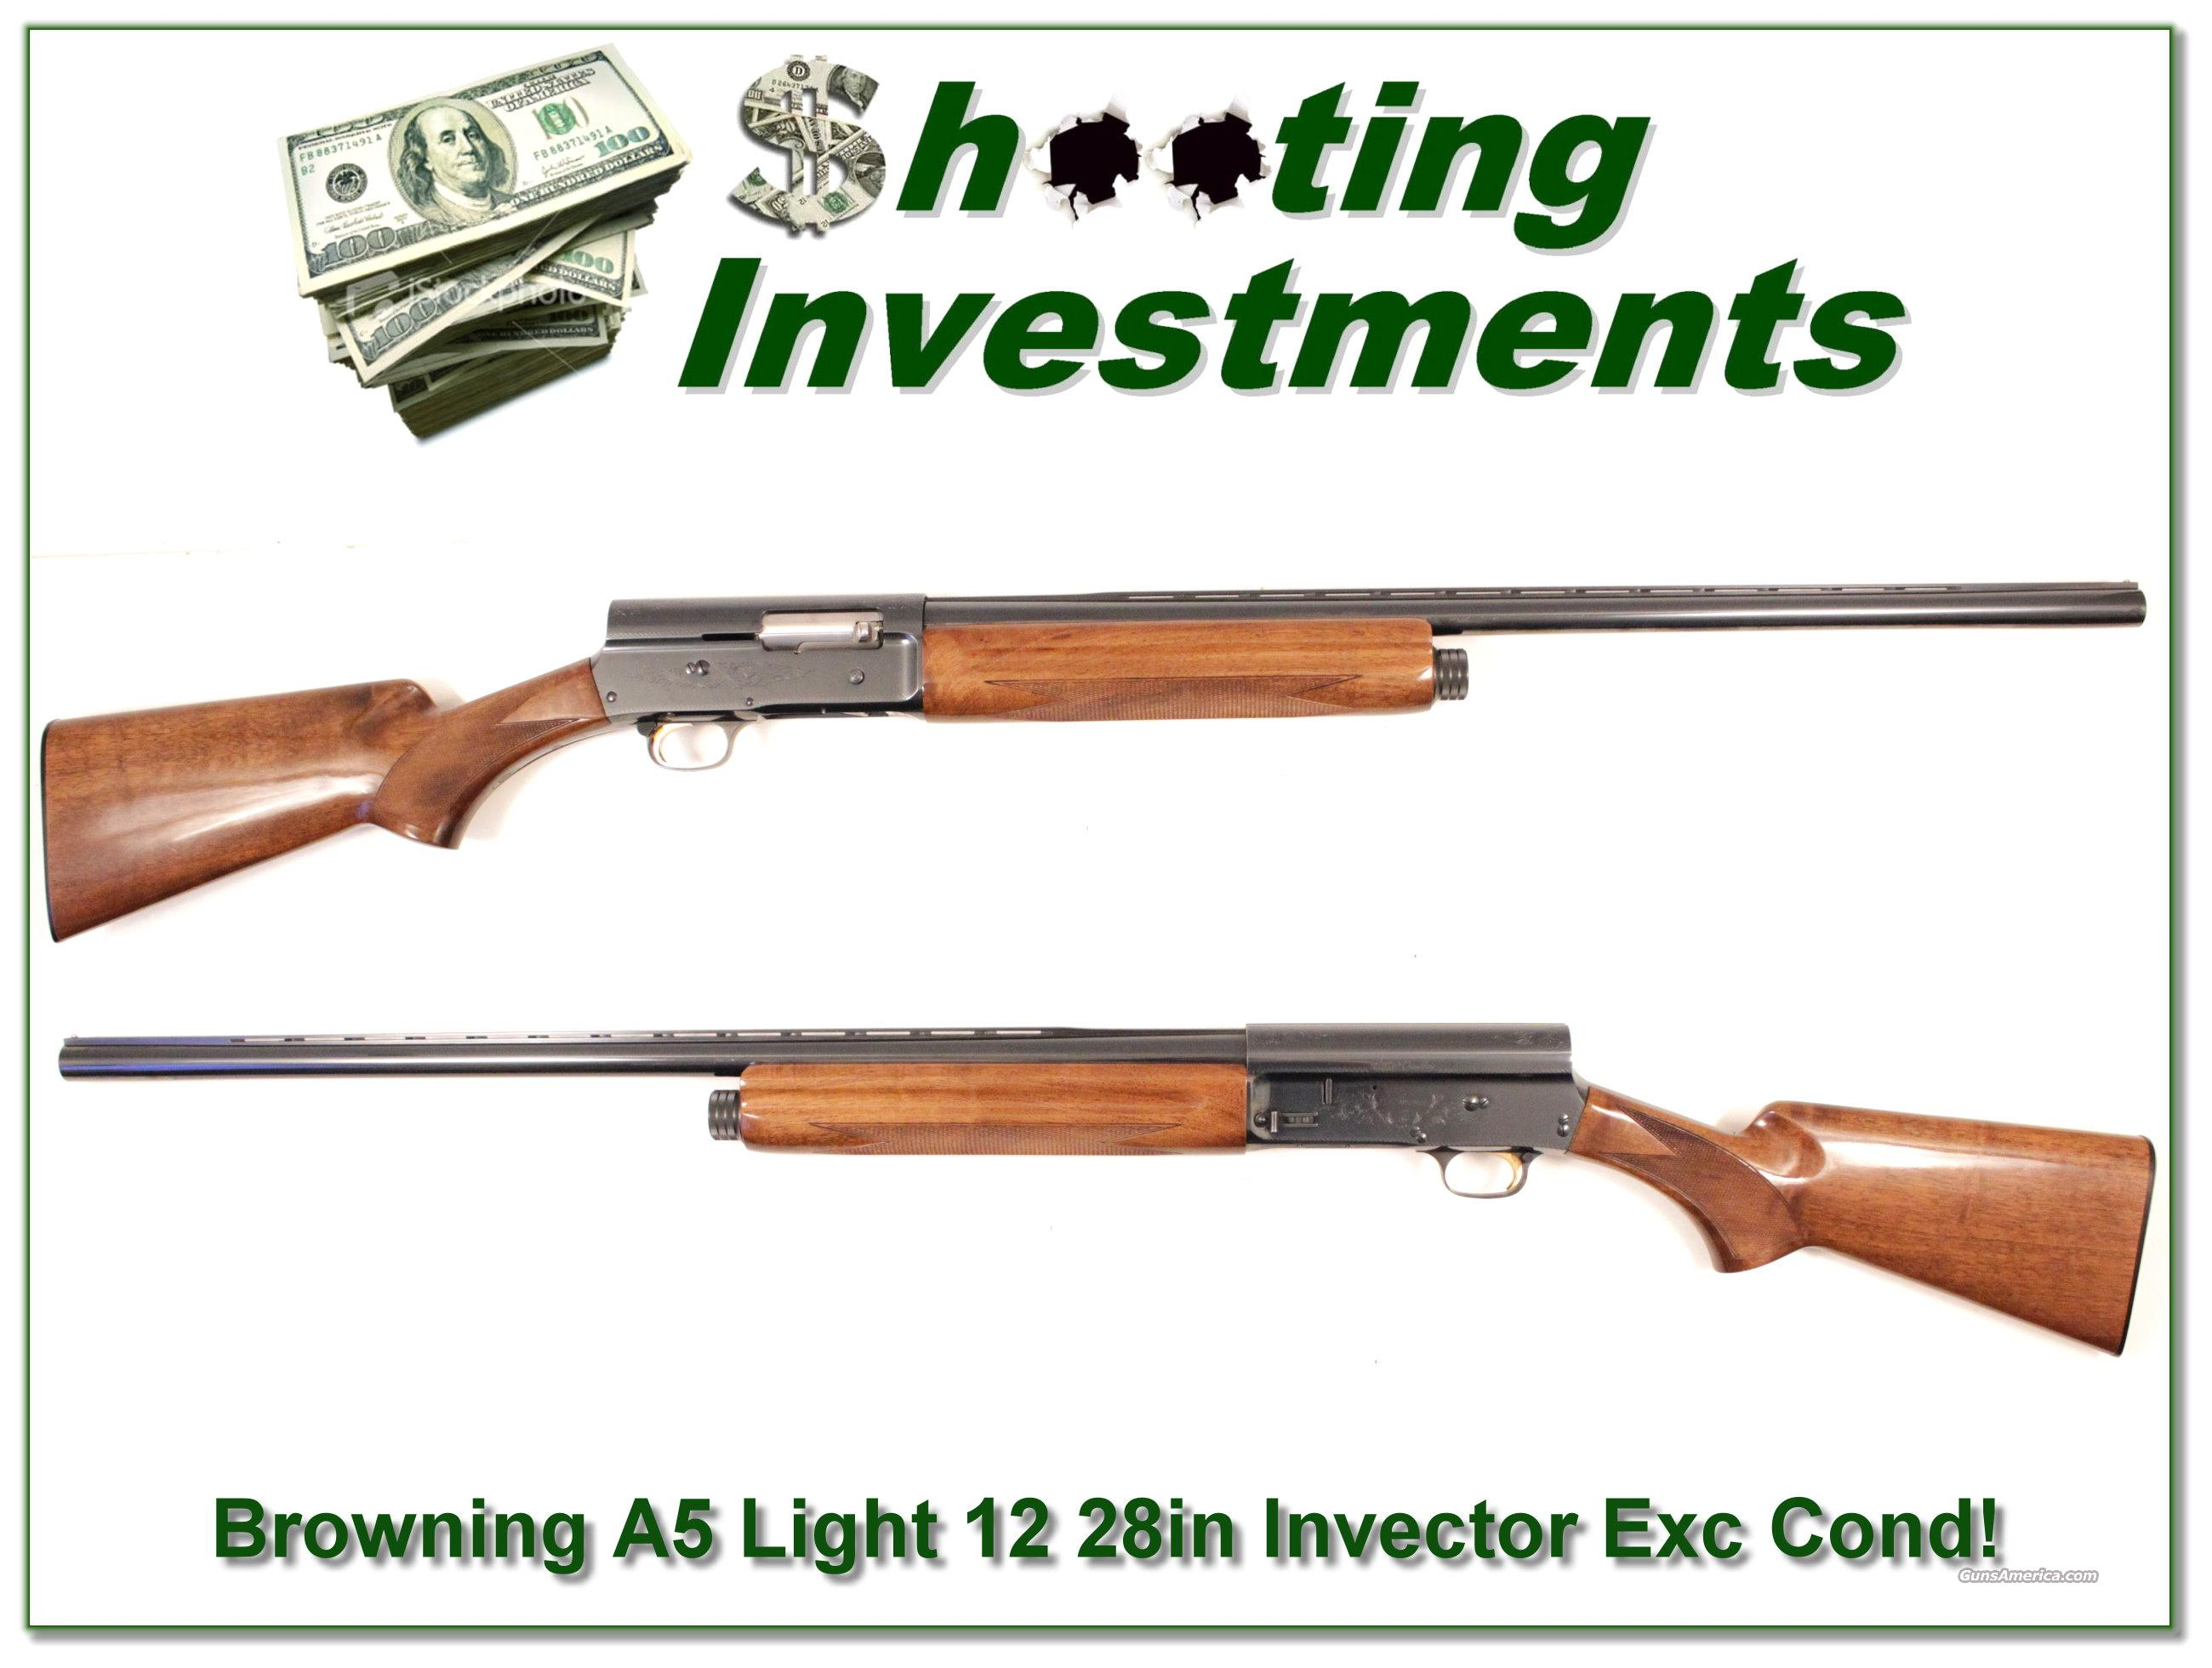 Browning A5 Light 12 28in Invector Exc Cond!  Guns > Shotguns > Browning Shotguns > Autoloaders > Hunting